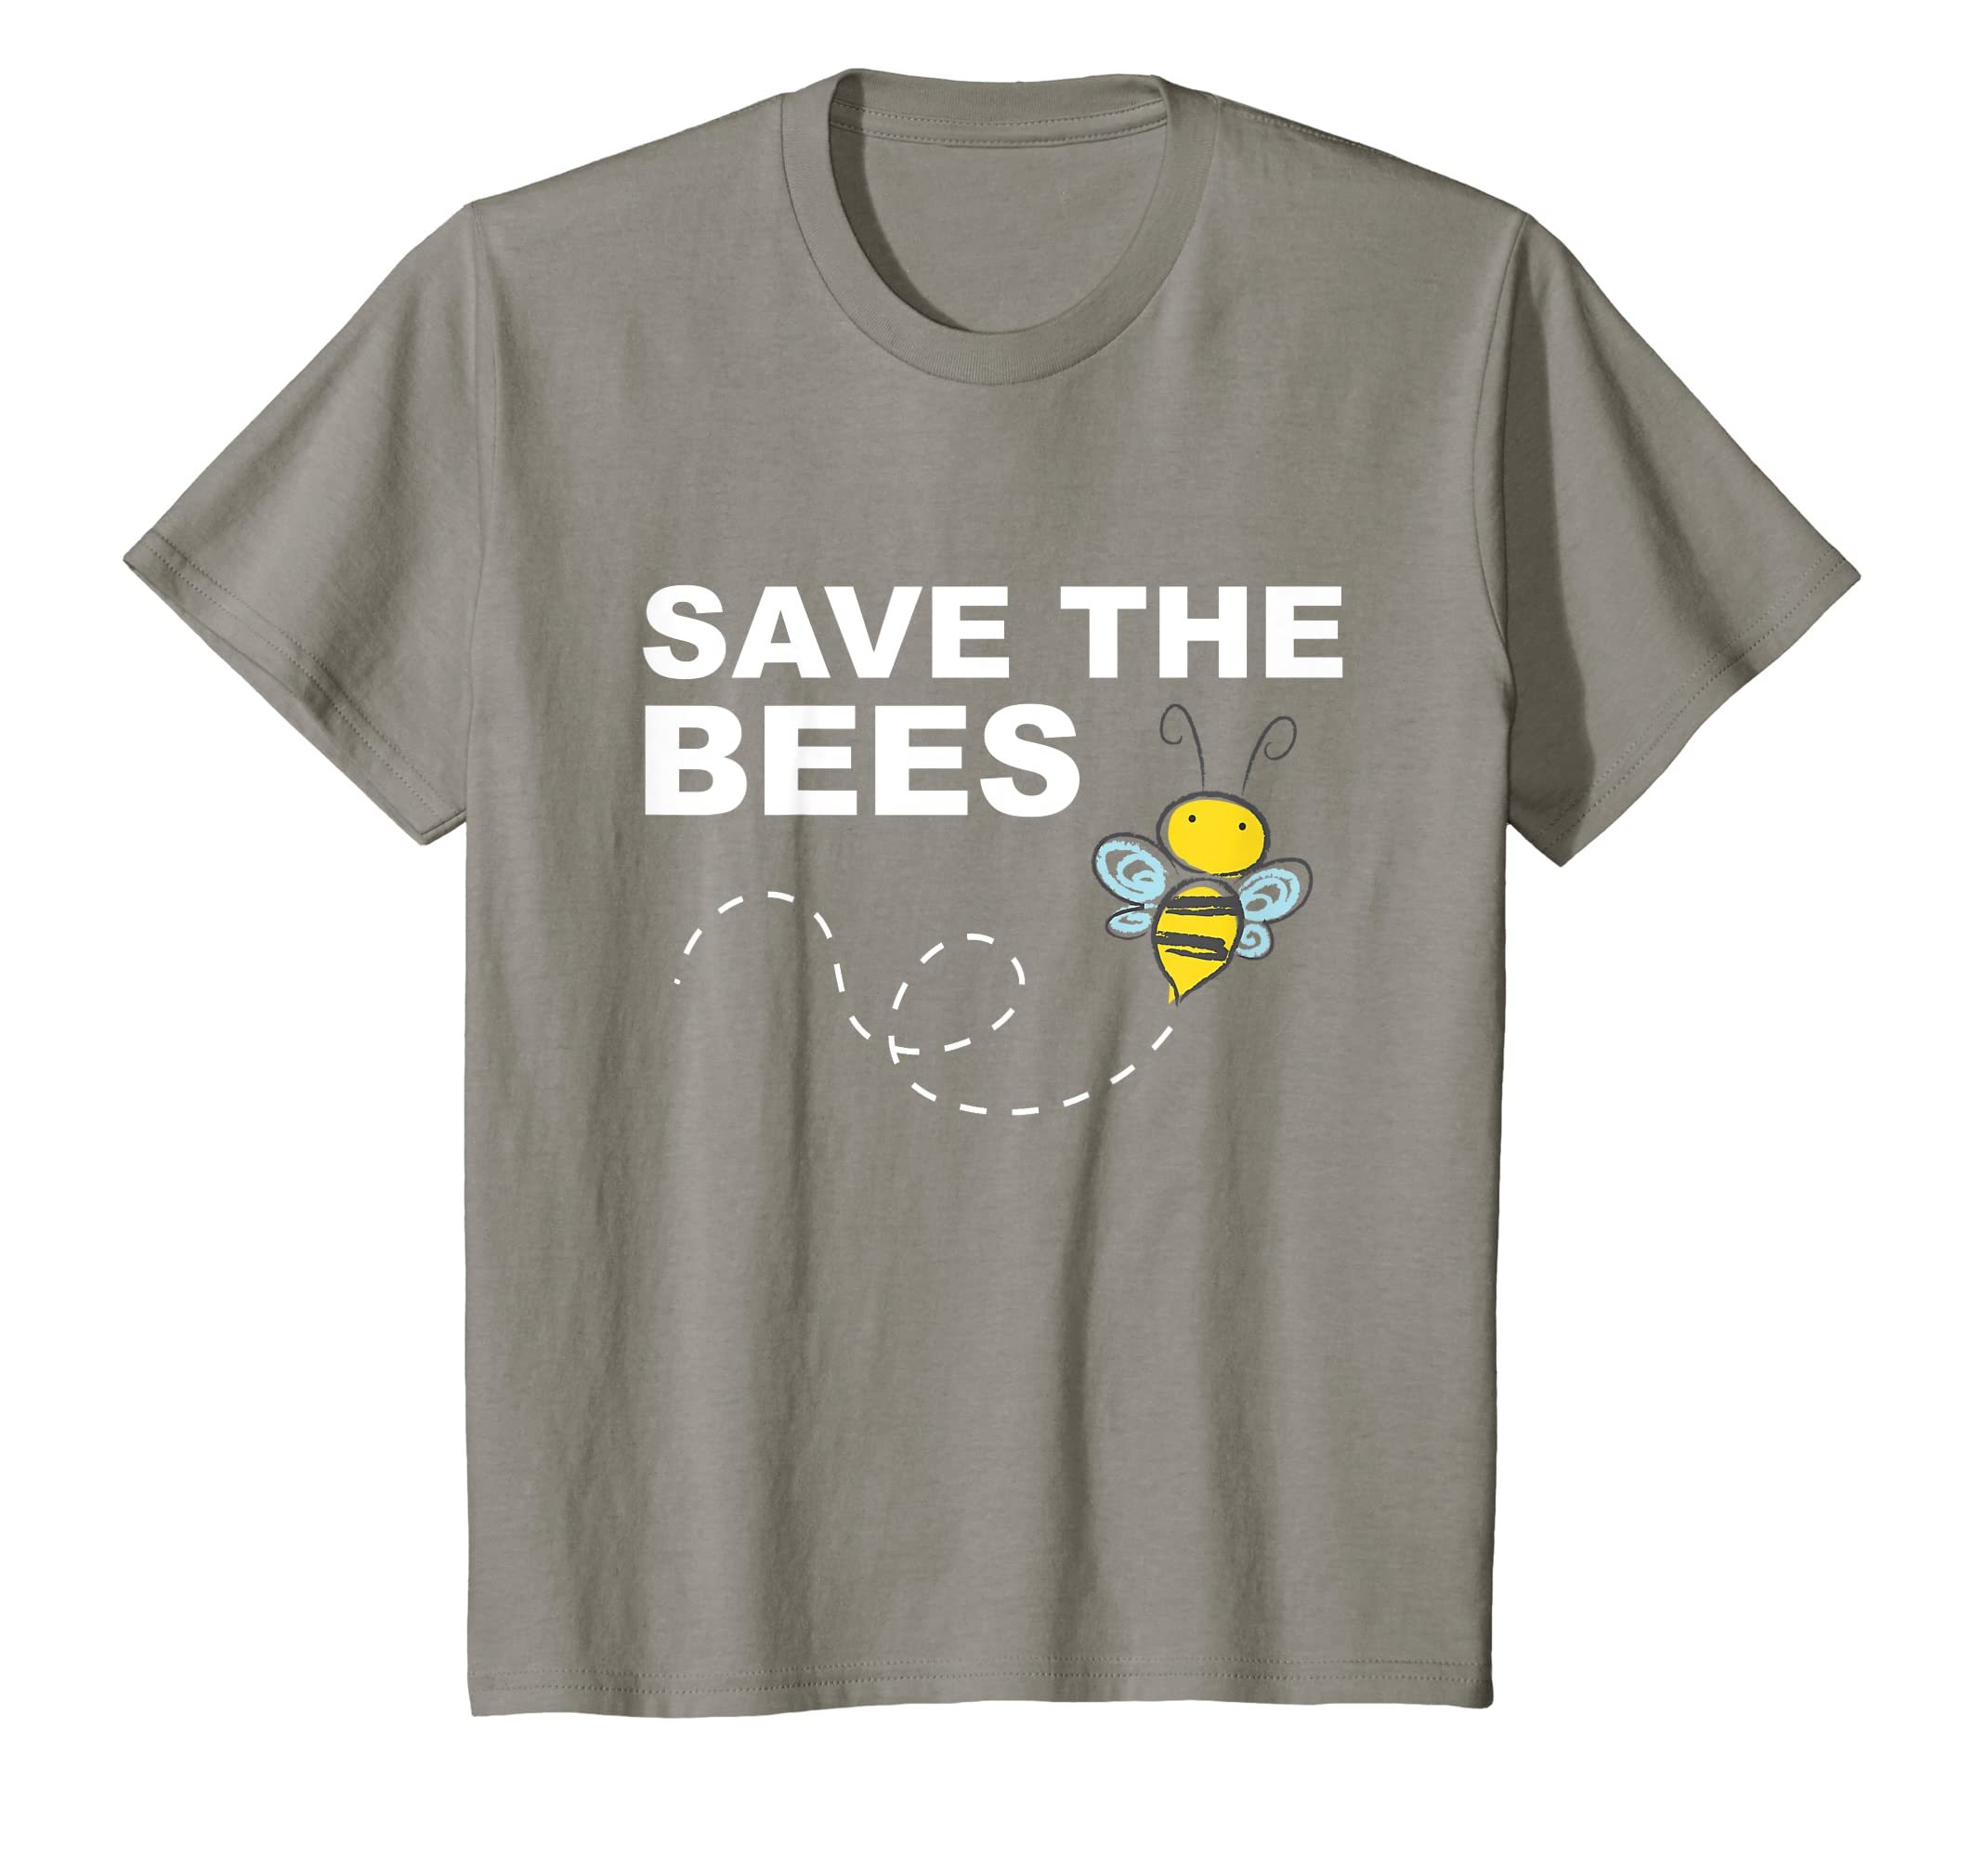 0f0362e1b6c Amazon.com  Save the Bees Shirt for Men Women and Children  Clothing